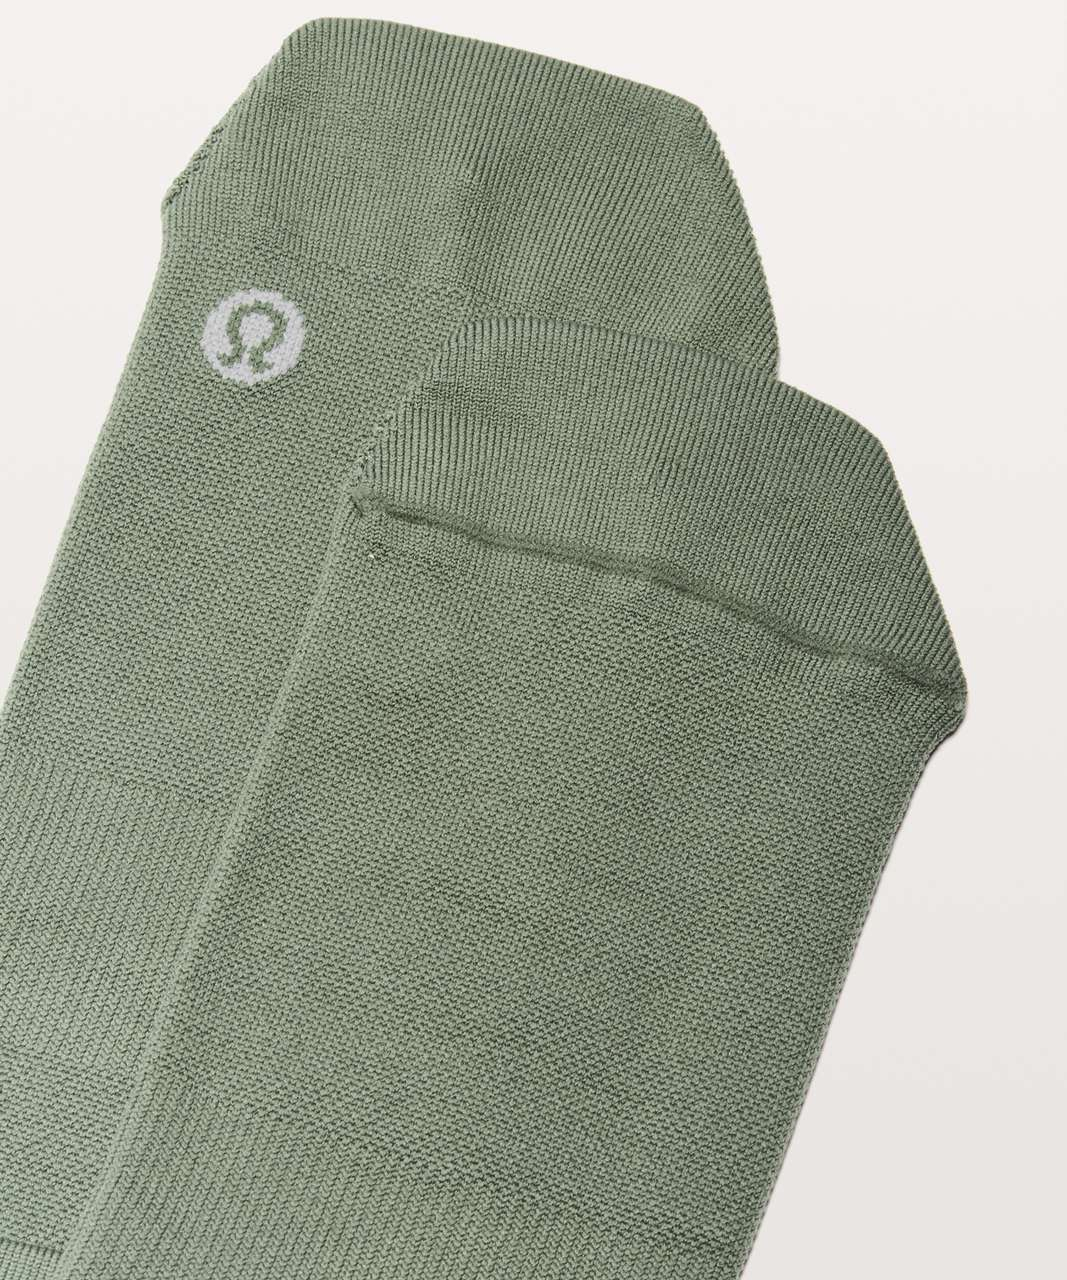 Lululemon Surge Sock *Silver - Green Twill / Light Cast